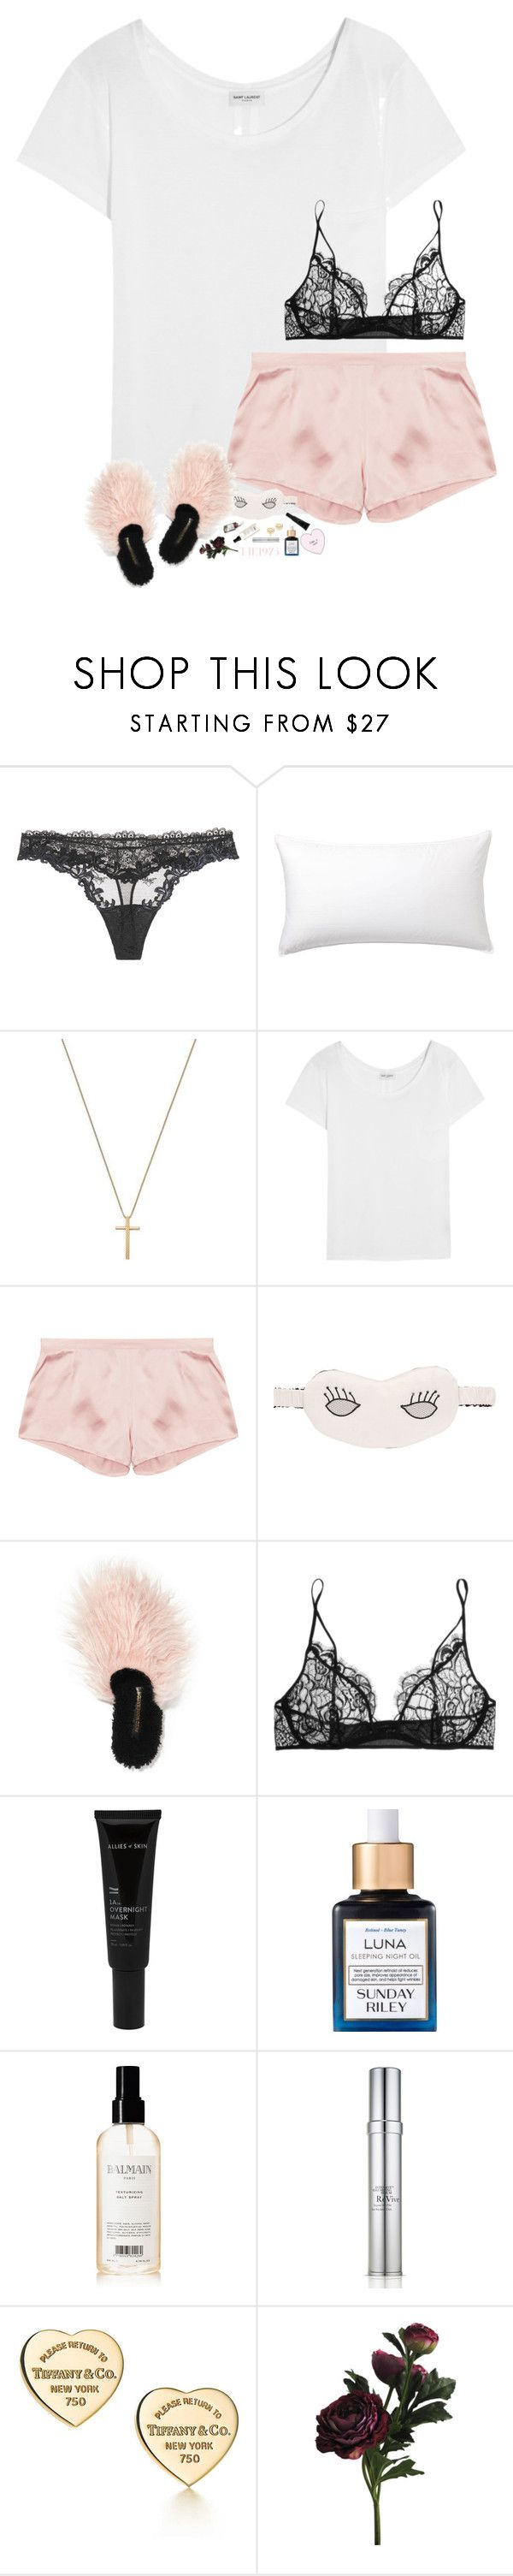 """I like it when you sleep for you are so beautiful yet so unaware of it"" by kthayer01 ❤ liked on Polyvore featuring La Perla, Pottery Barn, Gucci, Yves Saint Laurent, Morgan Lane, Avec Modération, Kiki de Montparnasse, Allies of Skin, Sunday Riley and Balmain"